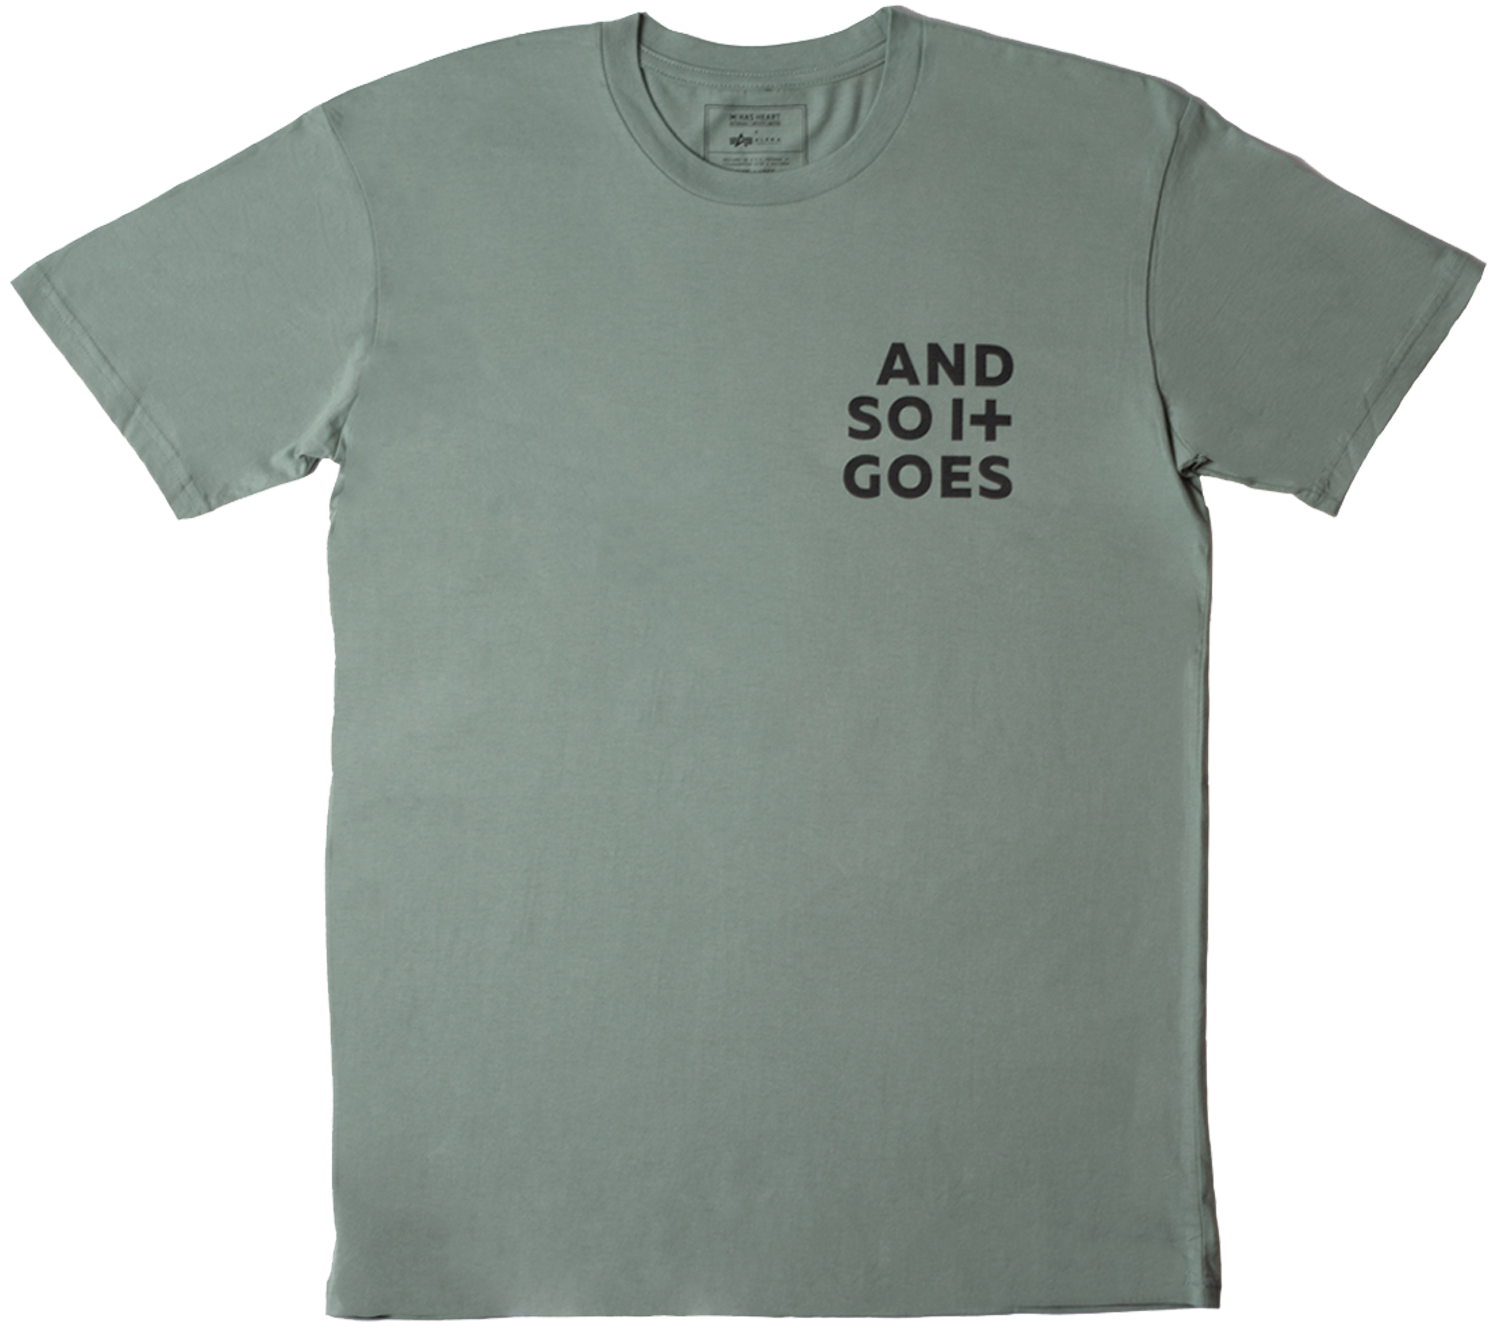 09-NJ-andsoitgoes-shirt.png